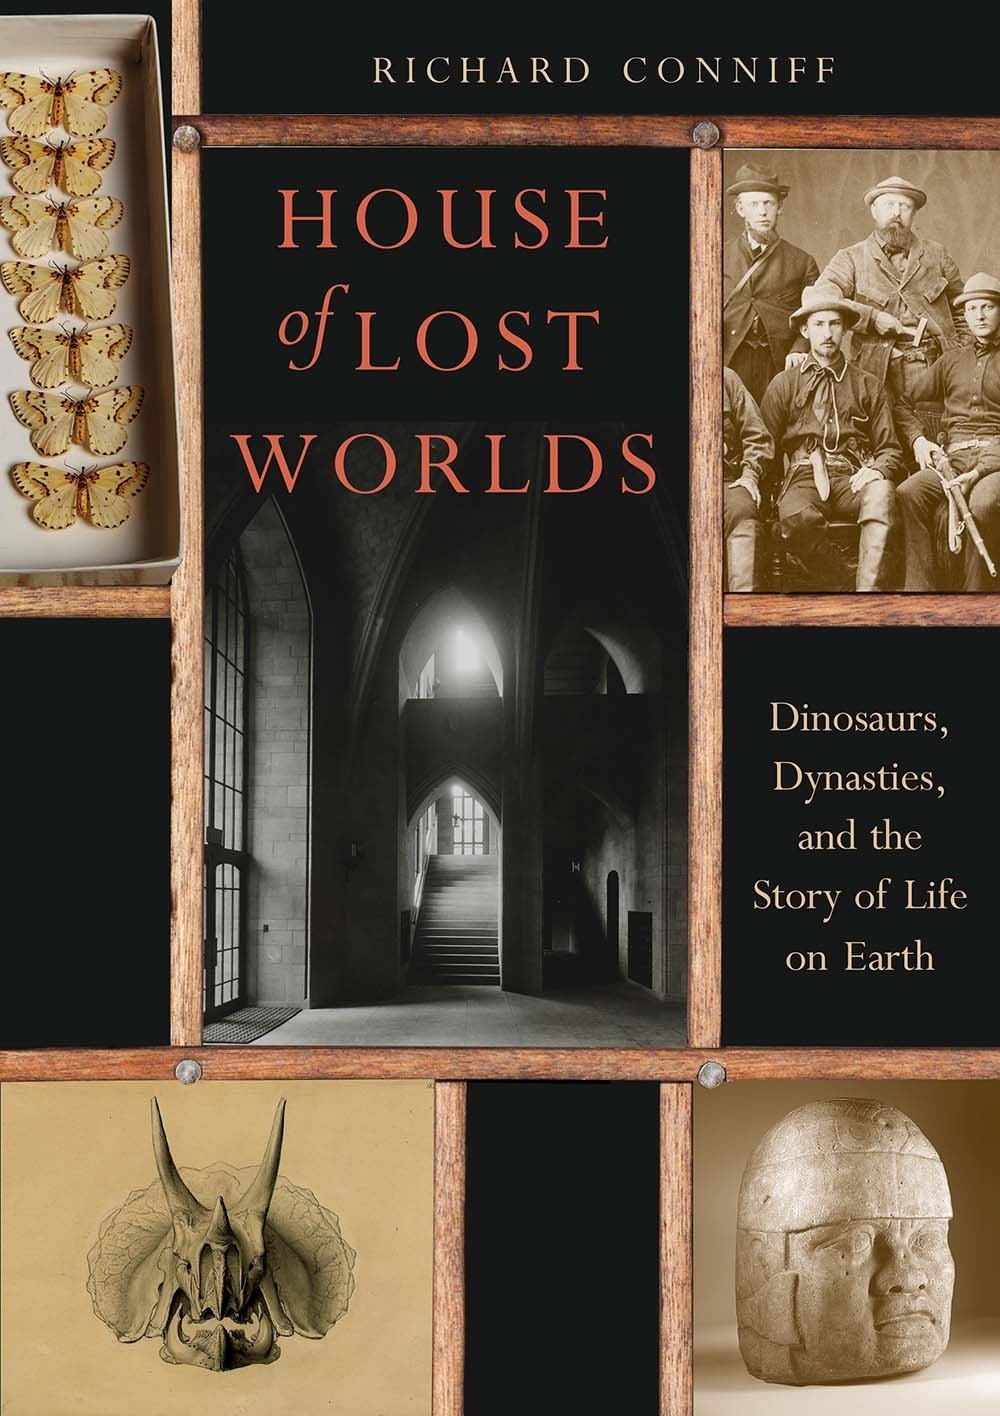 House of Lost Worlds Dinosaurs, Dynasties, and the Story of Life on Earth